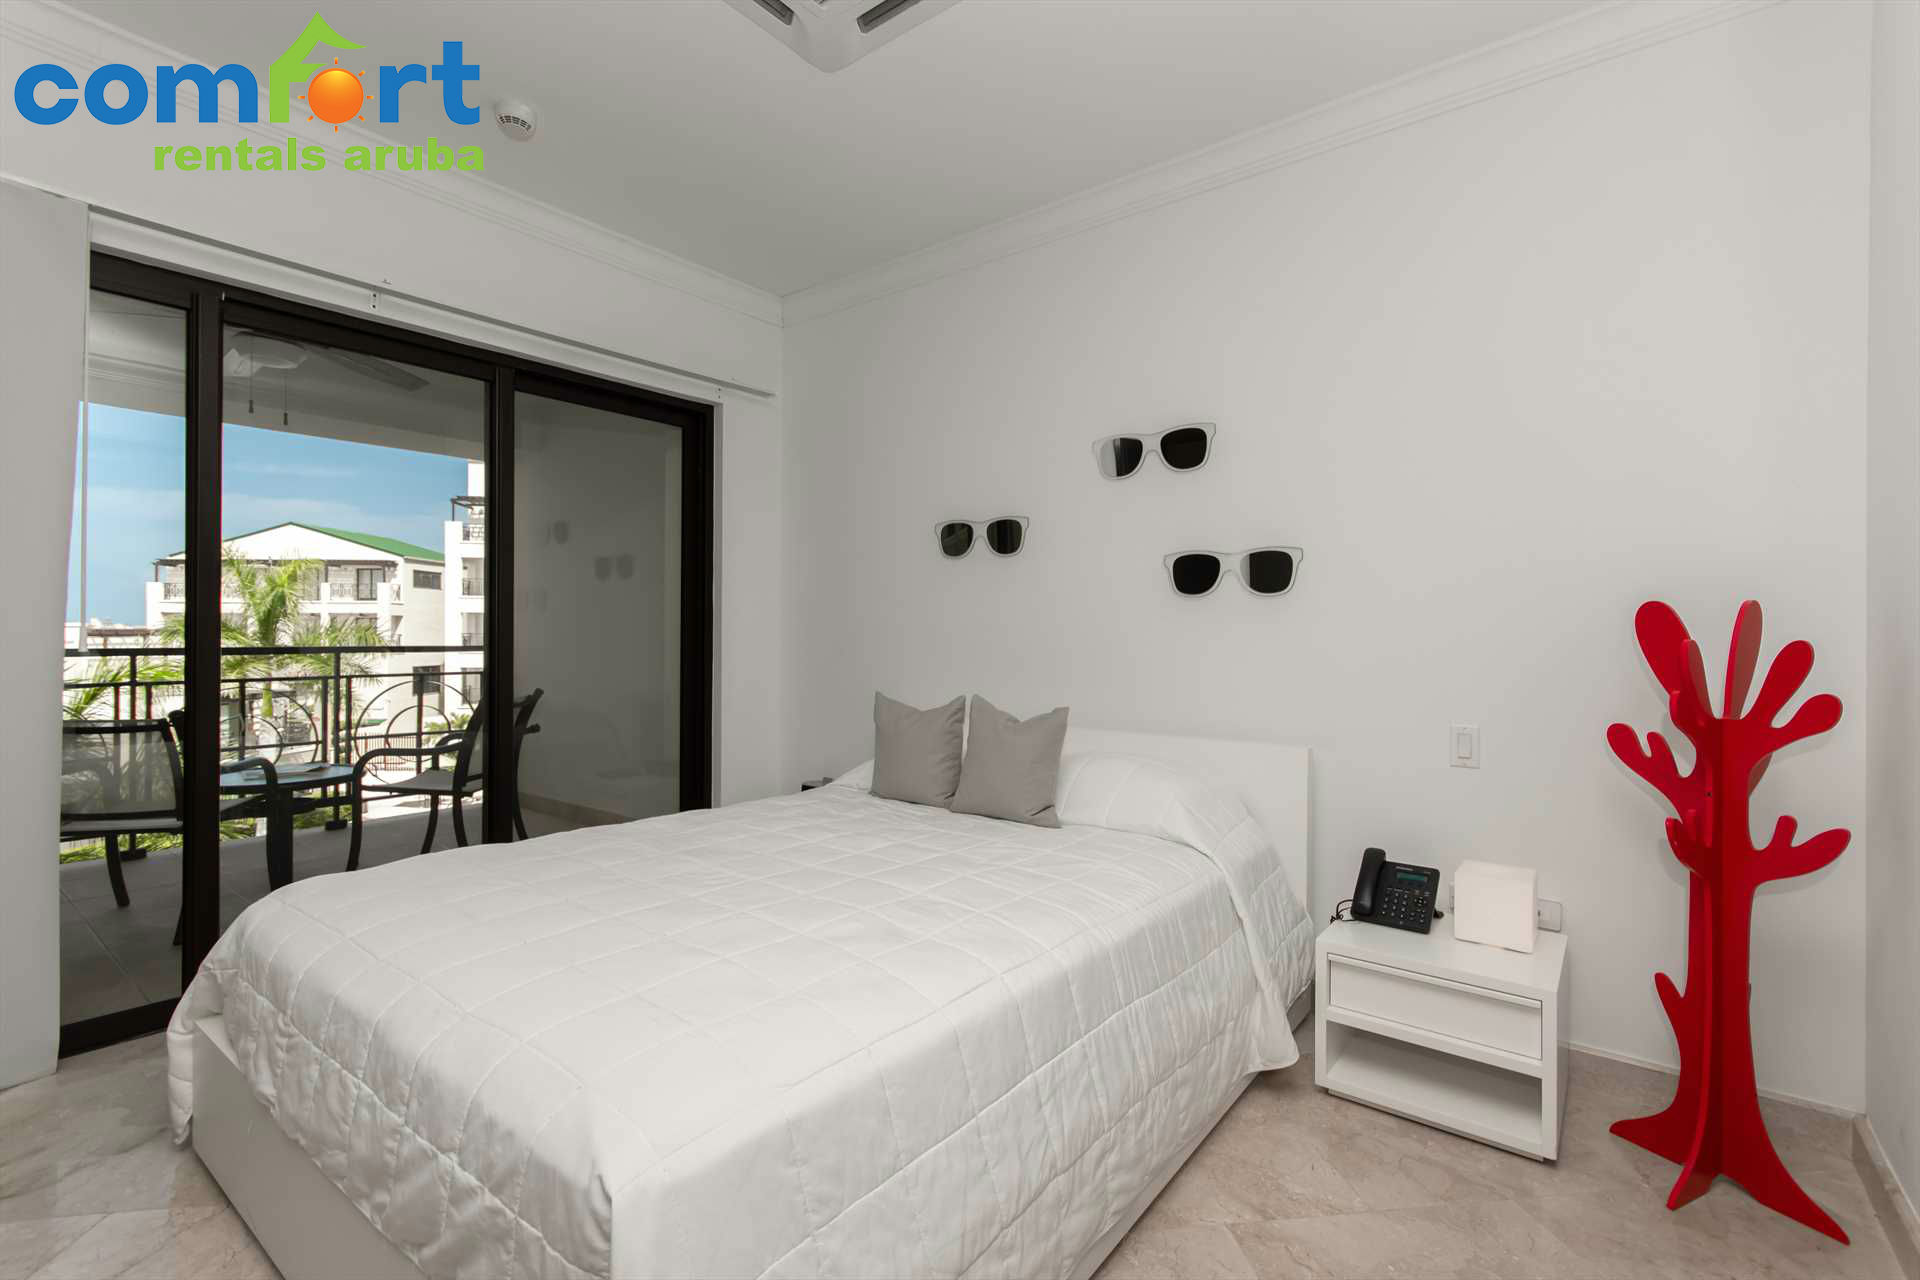 Welcome to the Areca Palm One-bedroom condo